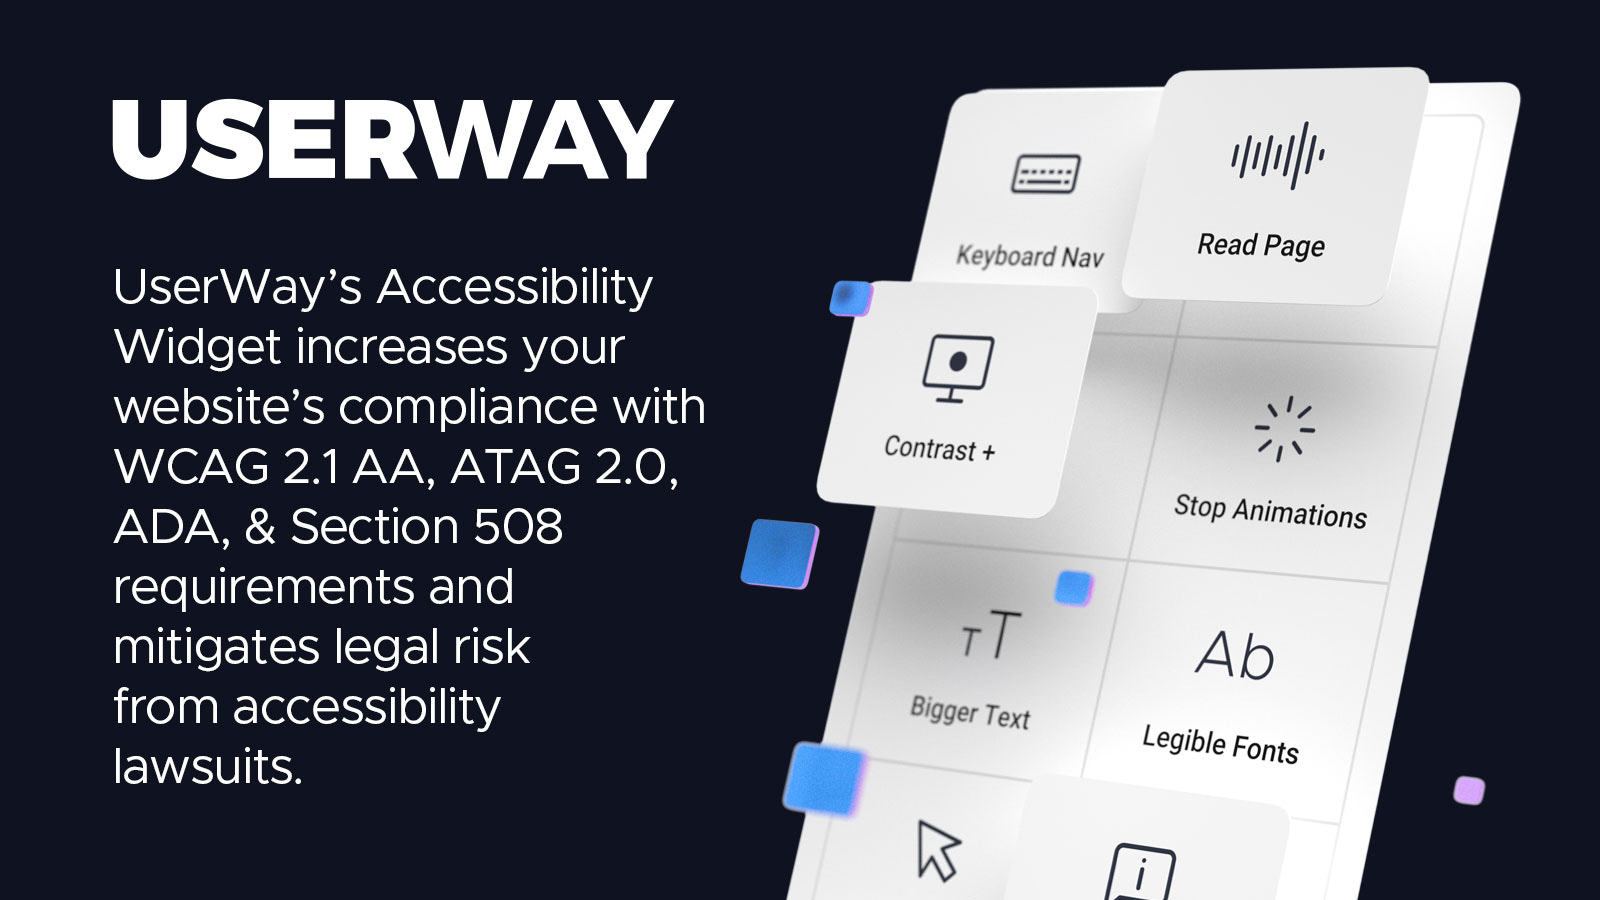 An illustration of UserWay's Accessibility Widget